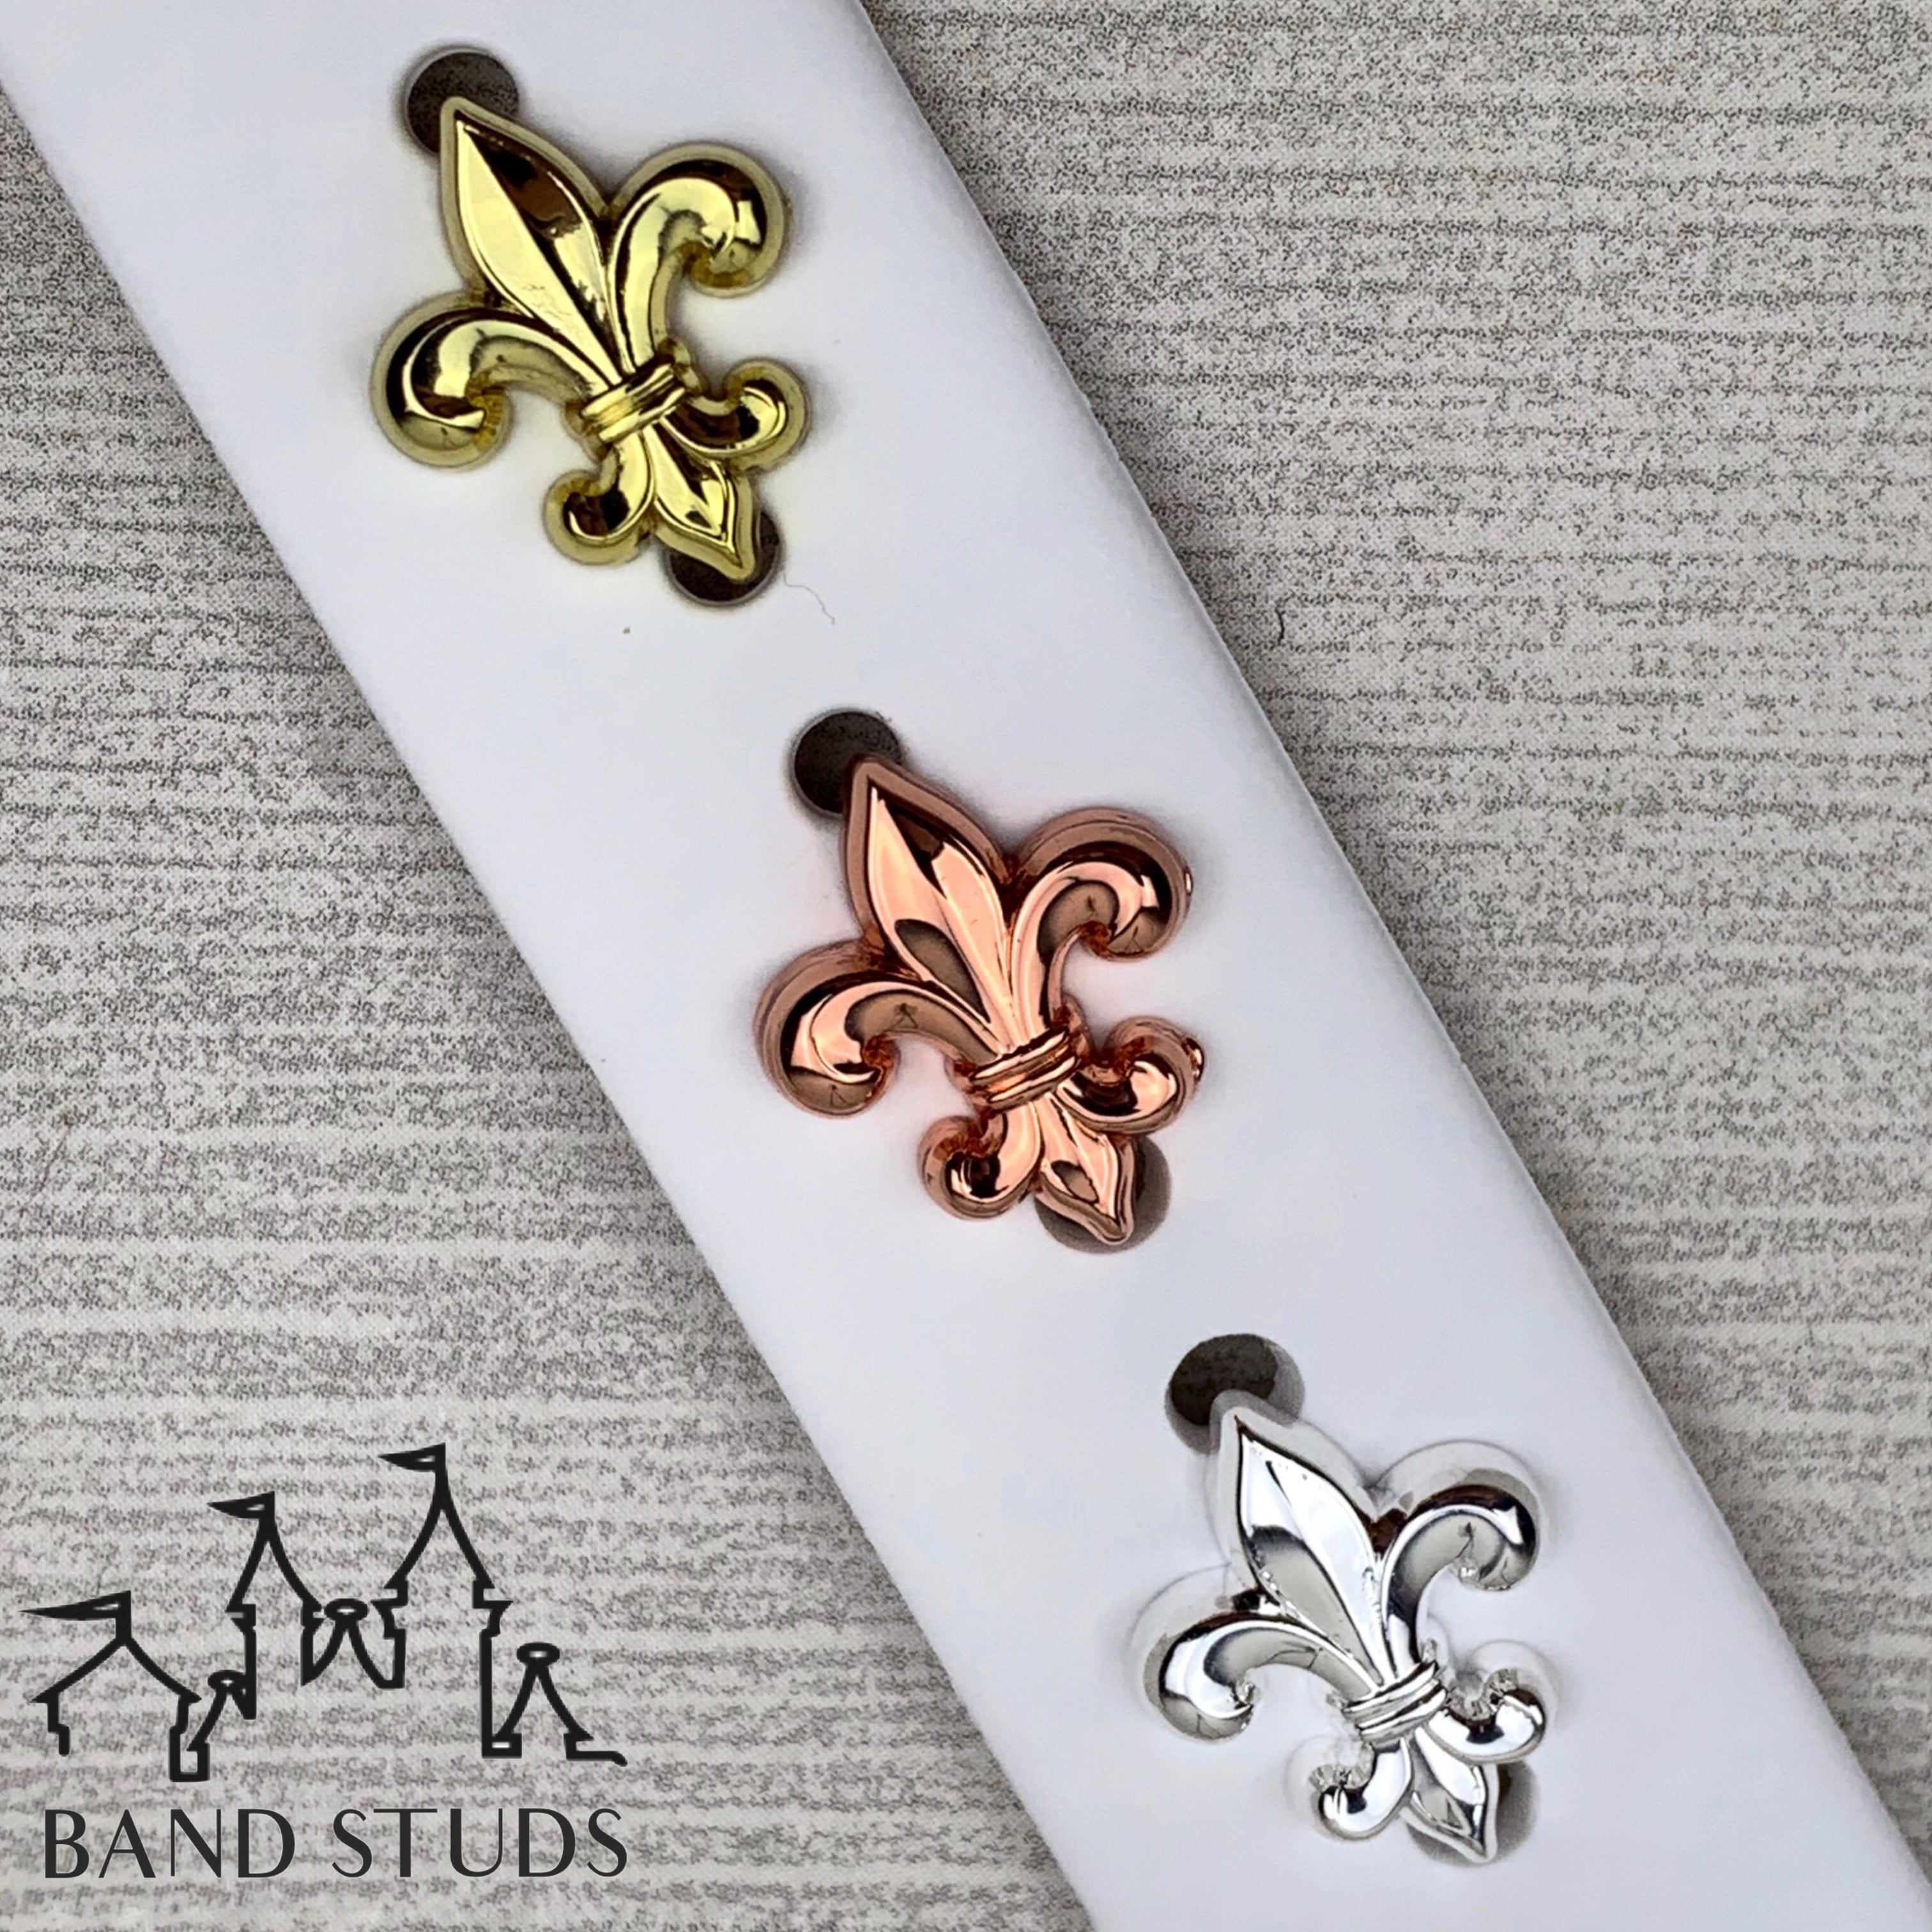 Band Stud® - Fleur de Lis  READY TO SHIP